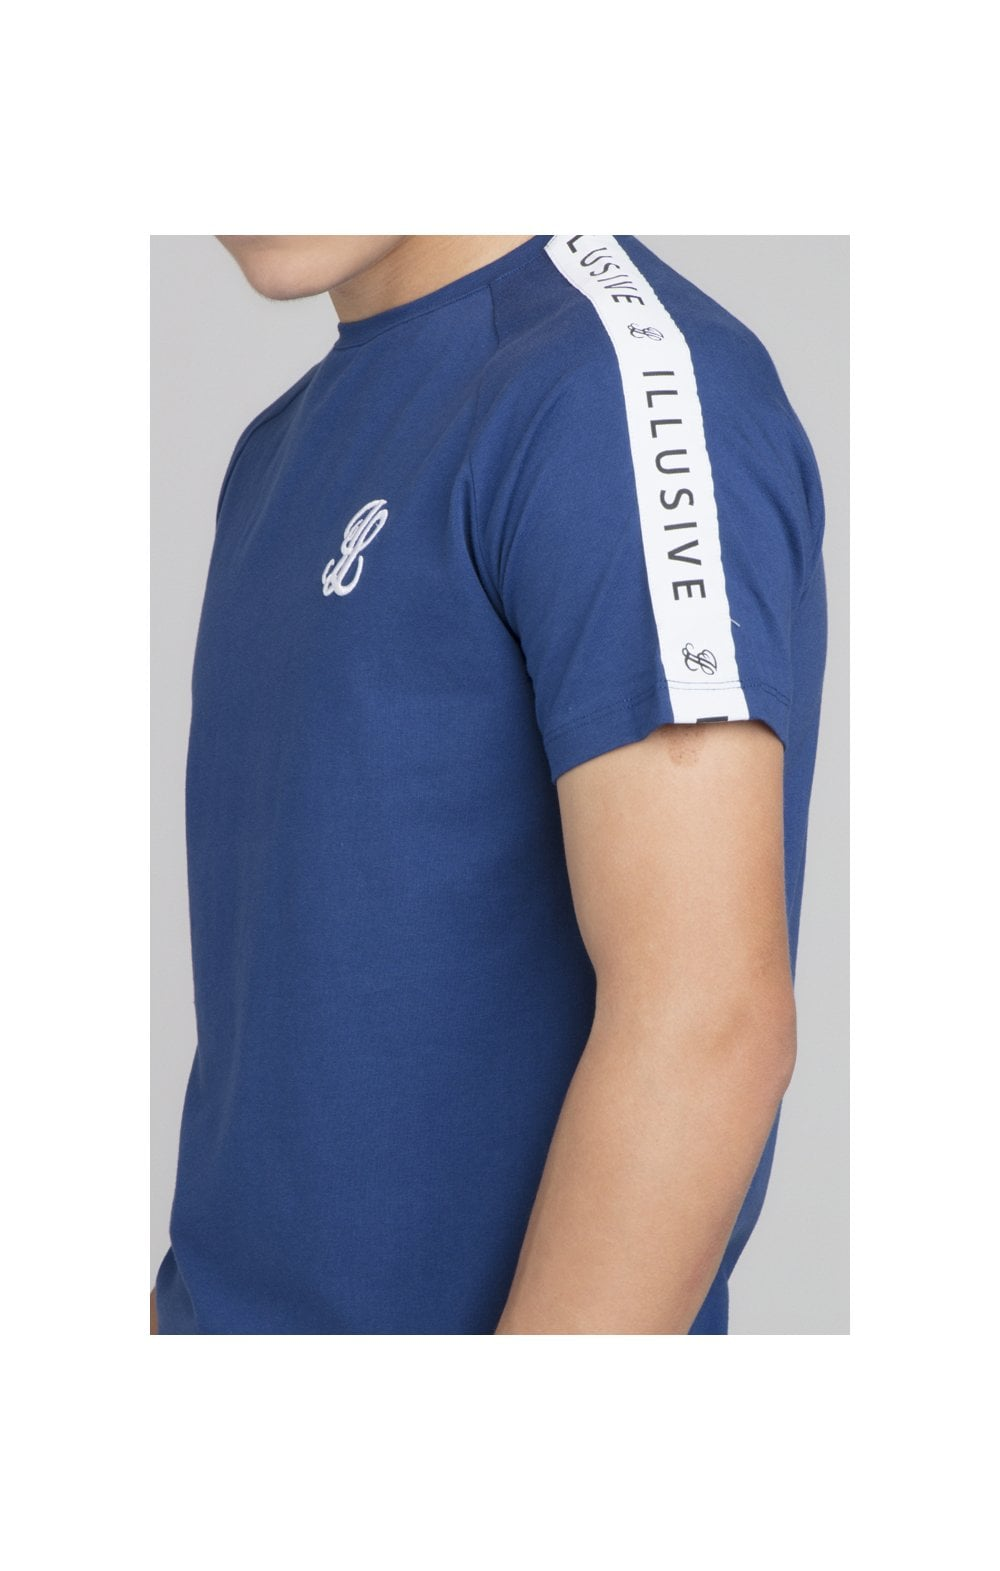 Illusive London Taped Core Tee - Royal Blue (1)